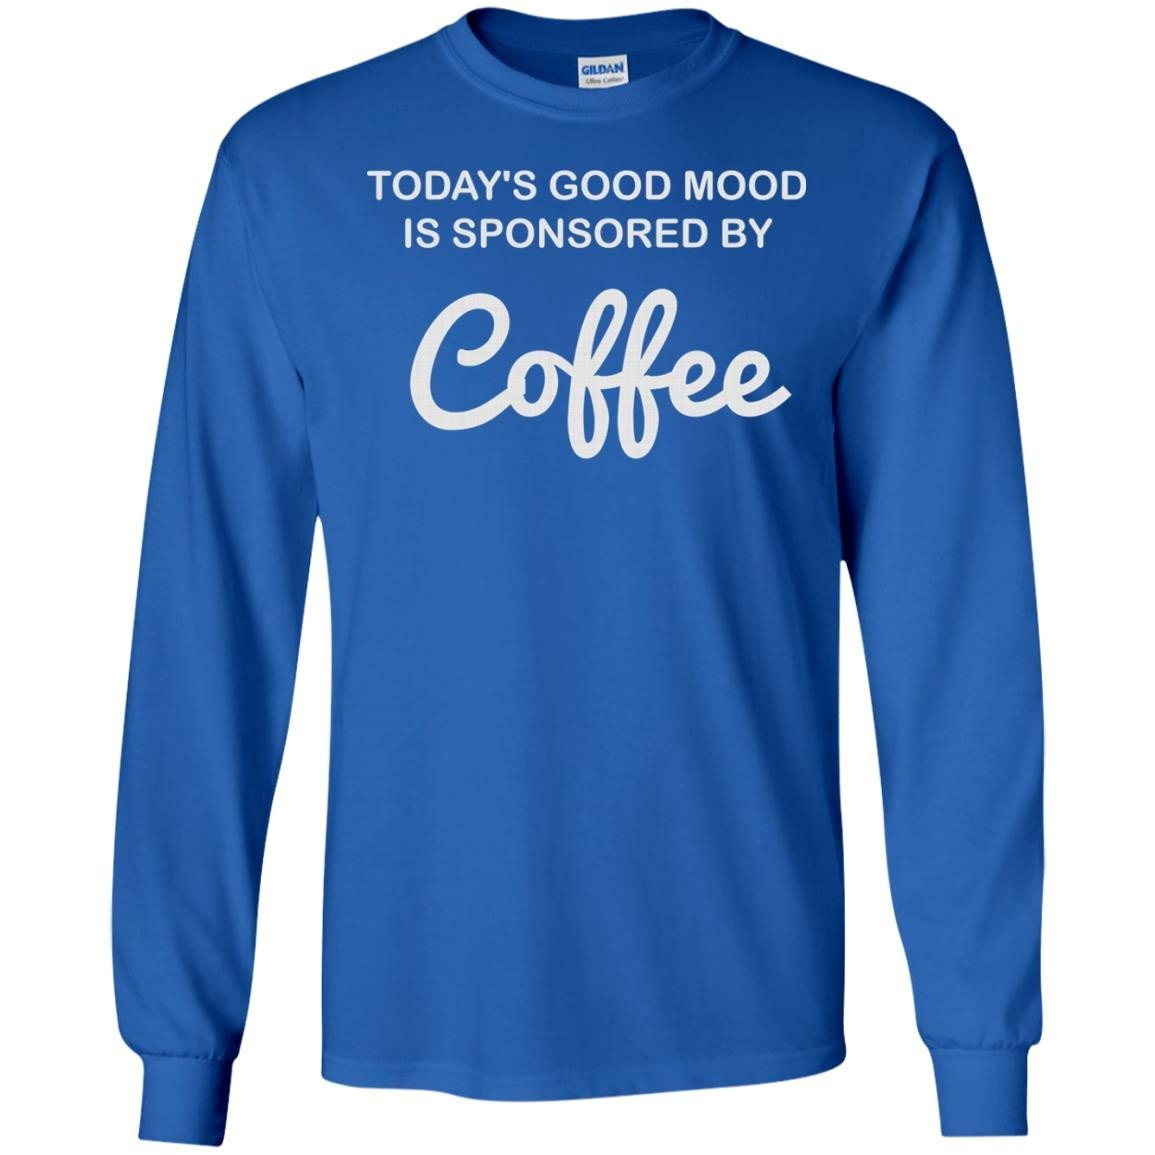 8e9ed6198 Today Good Mood Is Sponsored By Coffee T-Shirt Long Sleeve 240 - Alottee